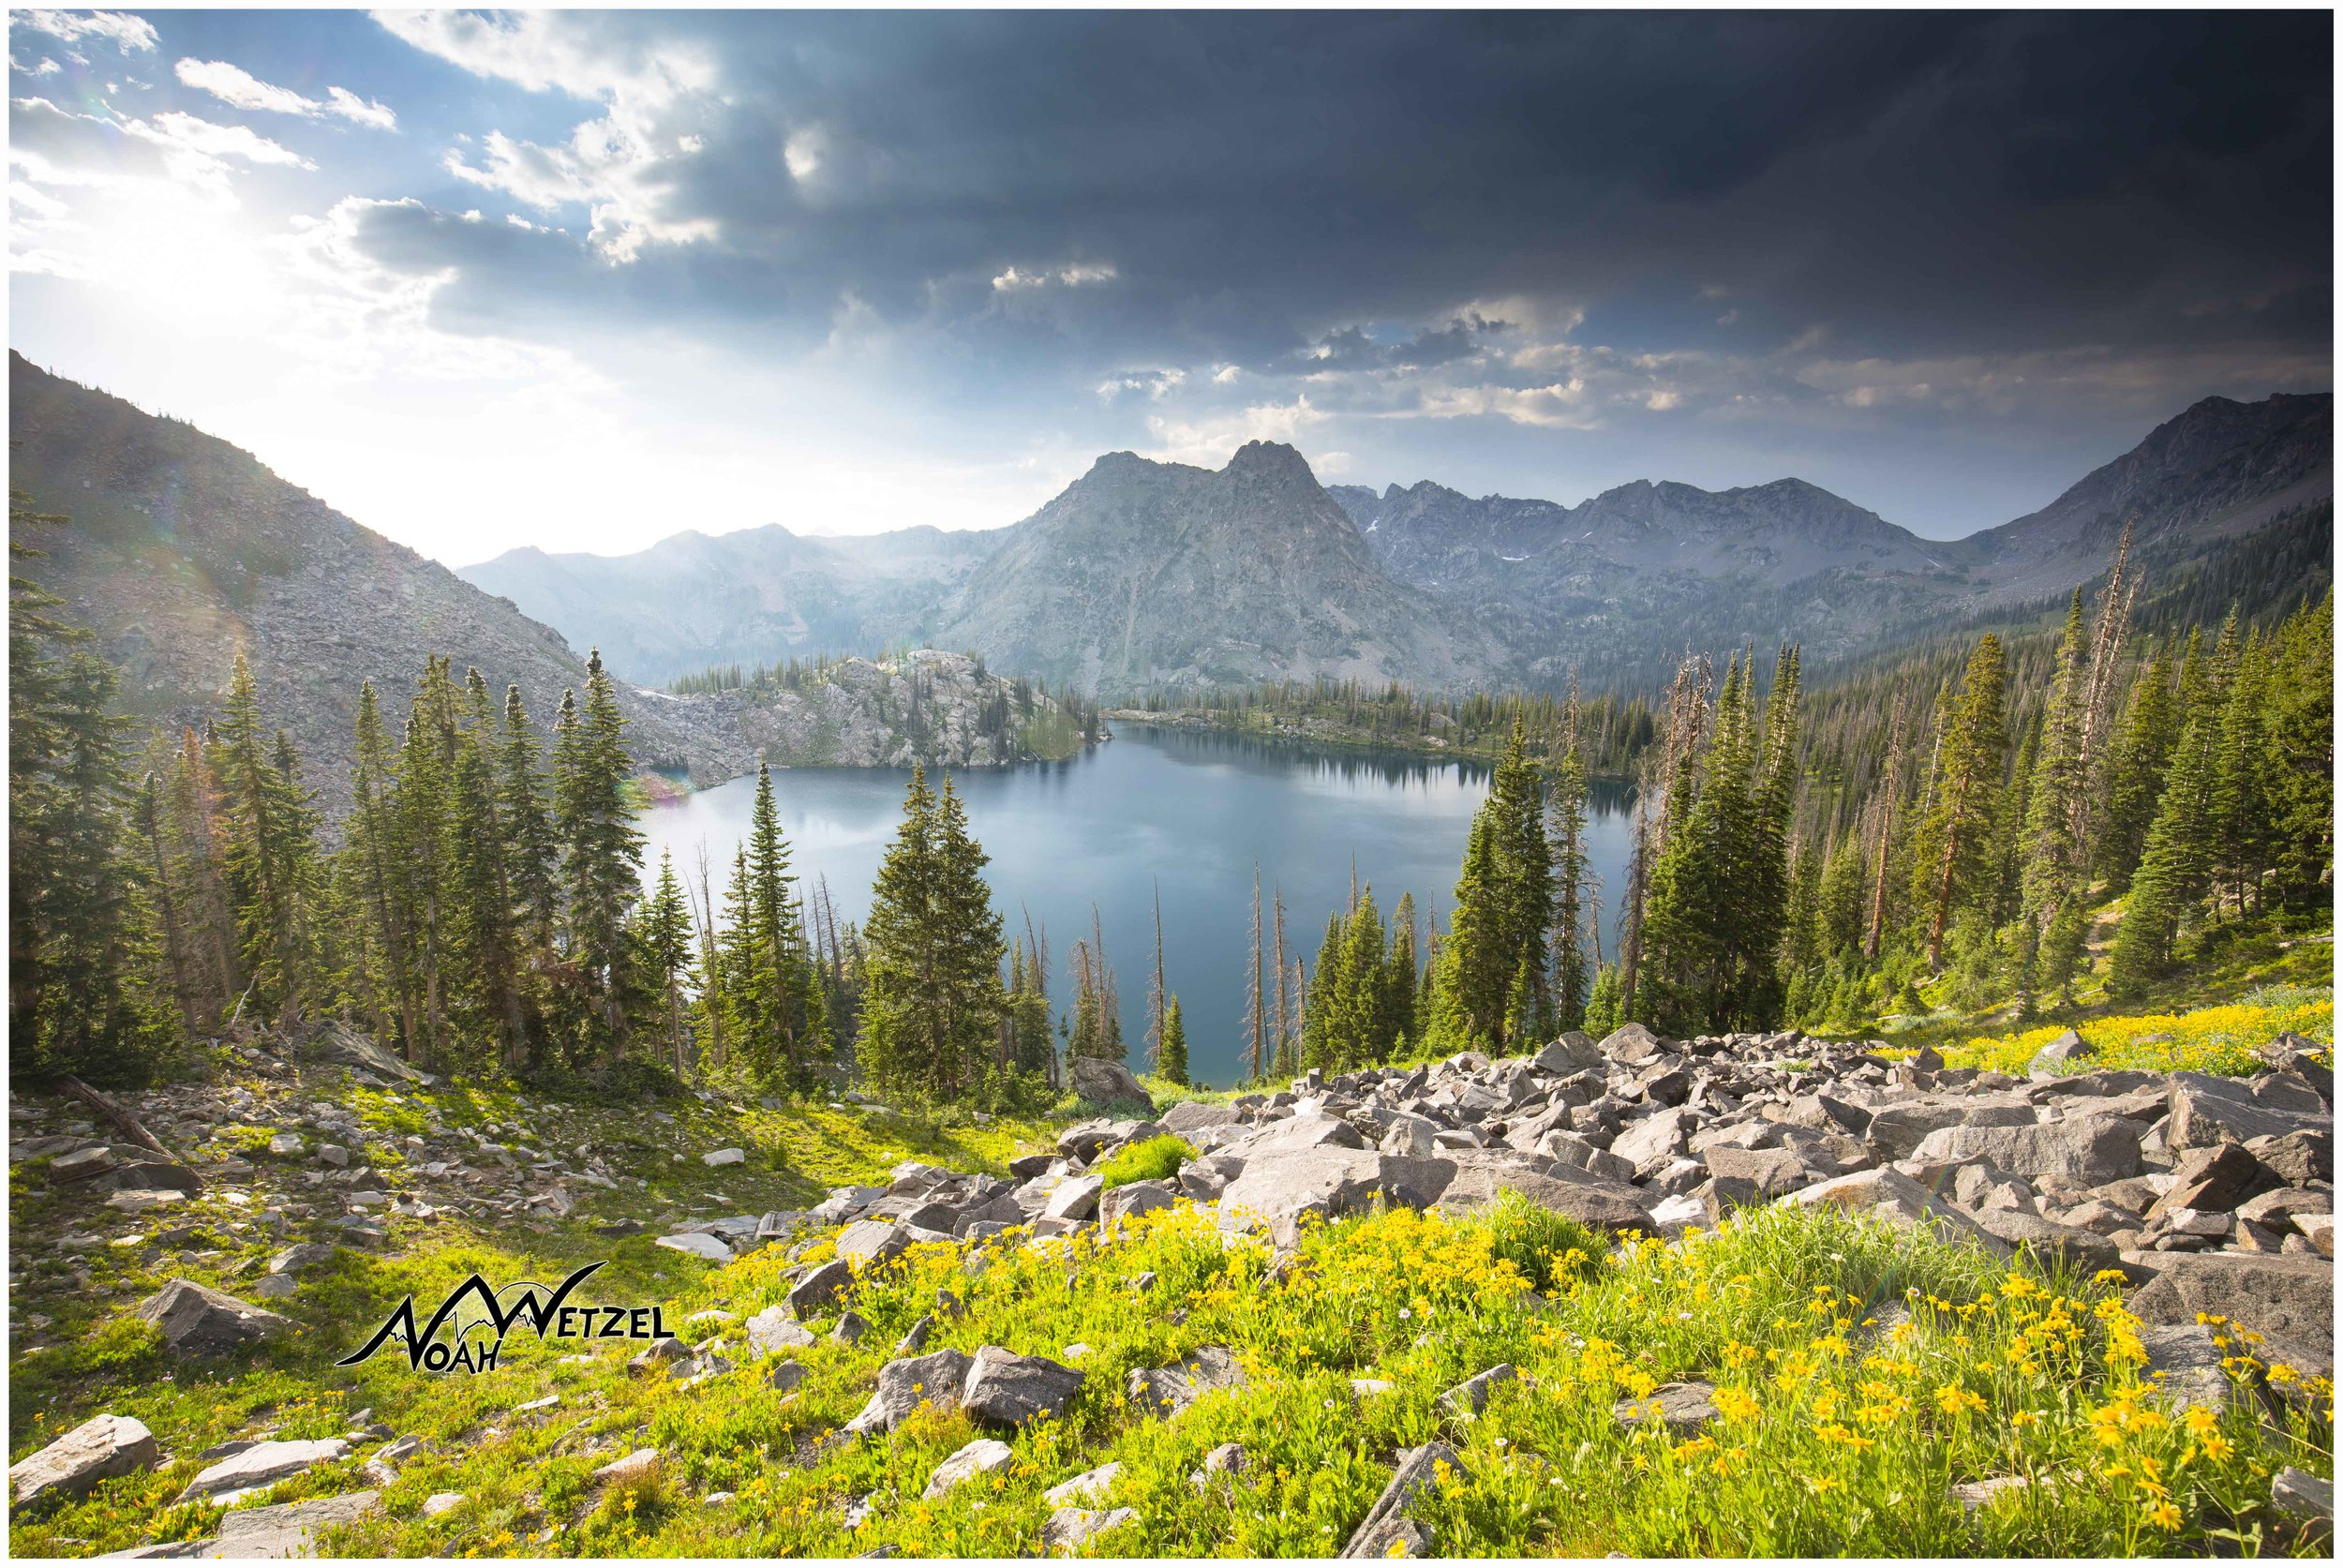 GILPIN LAKE in the Mount Zirkel Wilderness